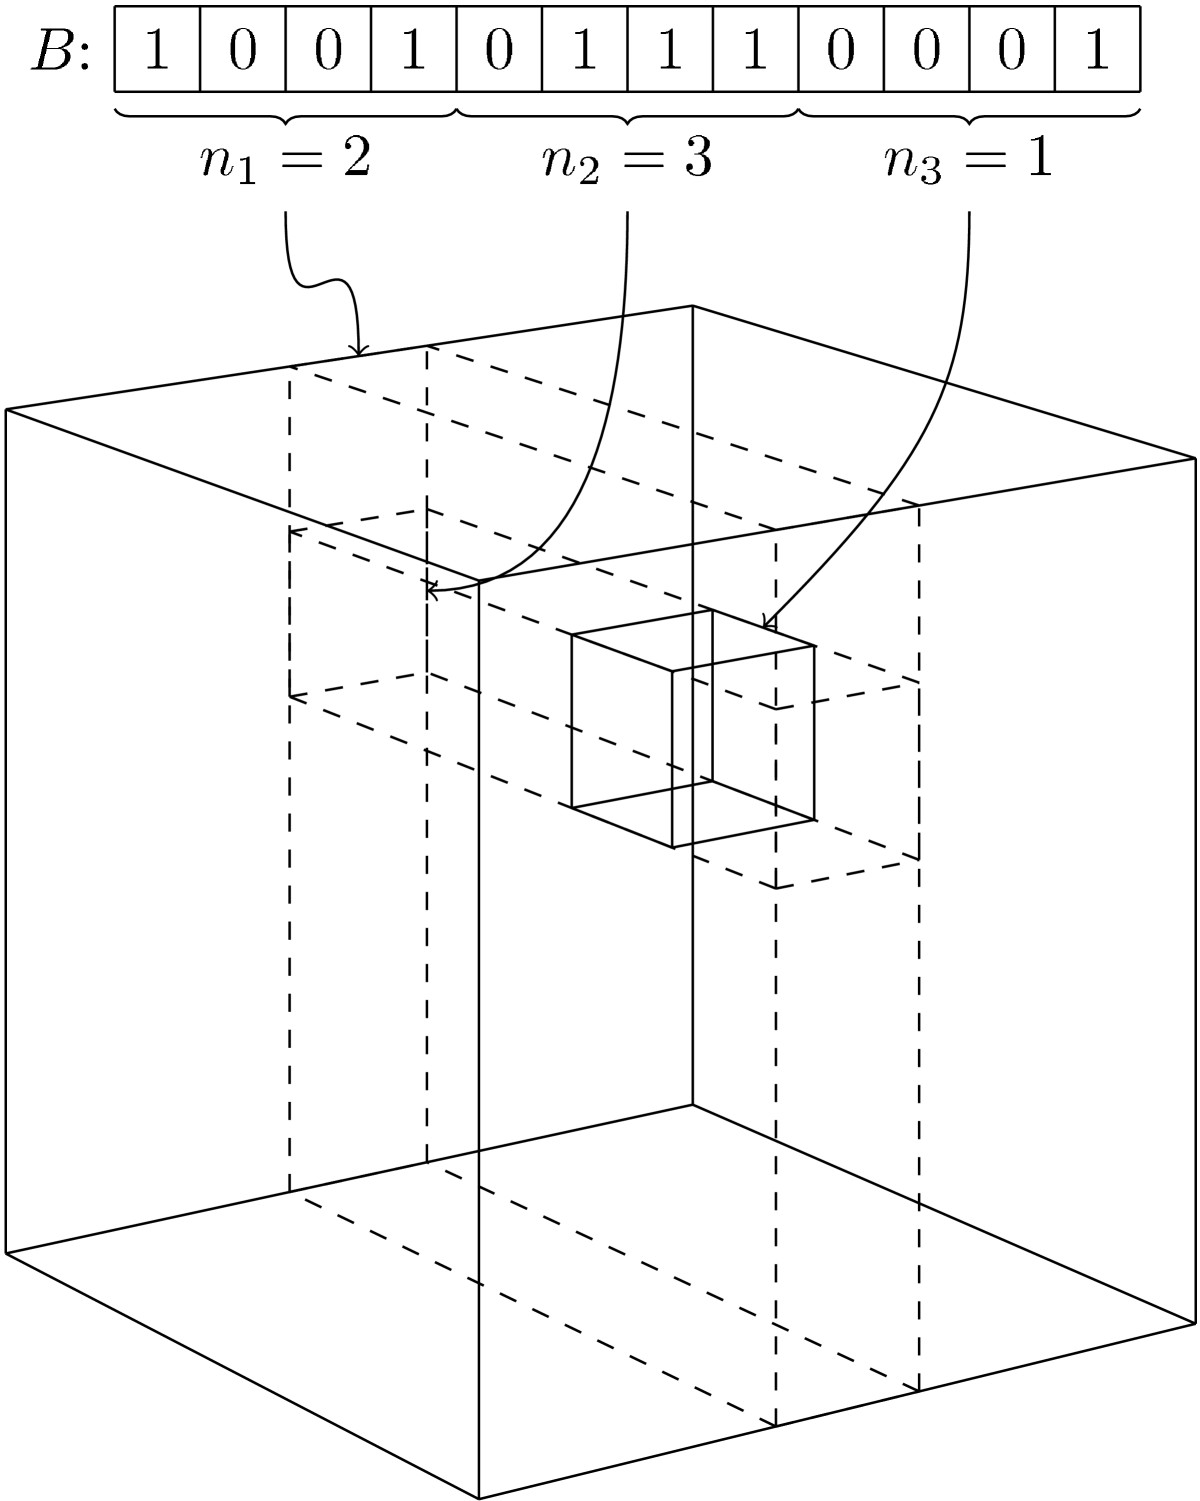 http://static-content.springer.com/image/art%3A10.1186%2F1748-7188-5-9/MediaObjects/13015_2009_Article_82_Fig2_HTML.jpg